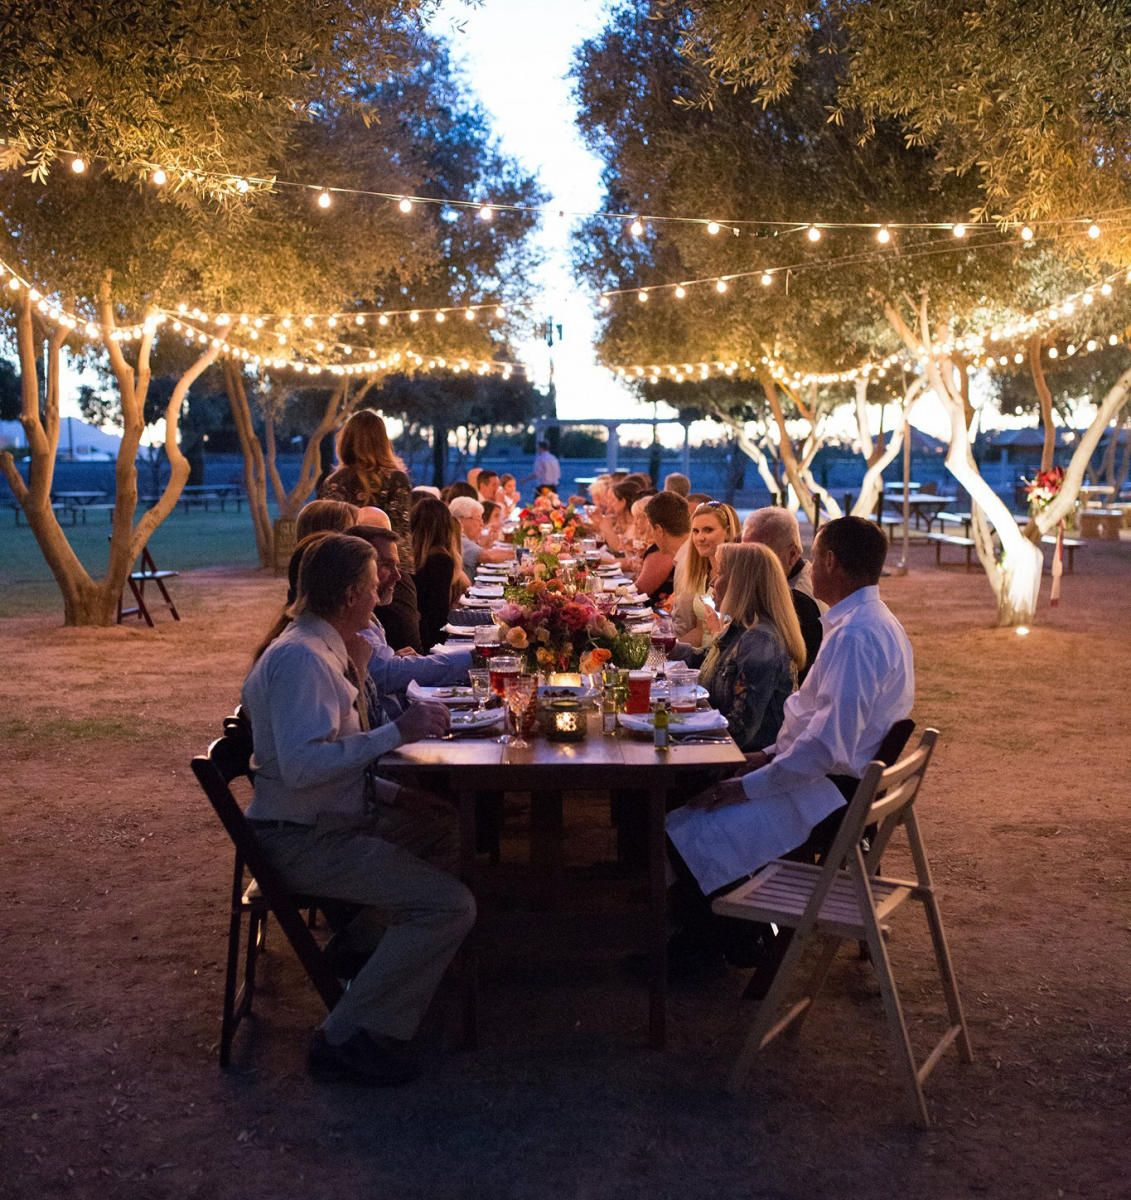 Outdoor Wedding Ceremony No Music: Live Music Every Saturday Evening From 6-9PM At Your Local